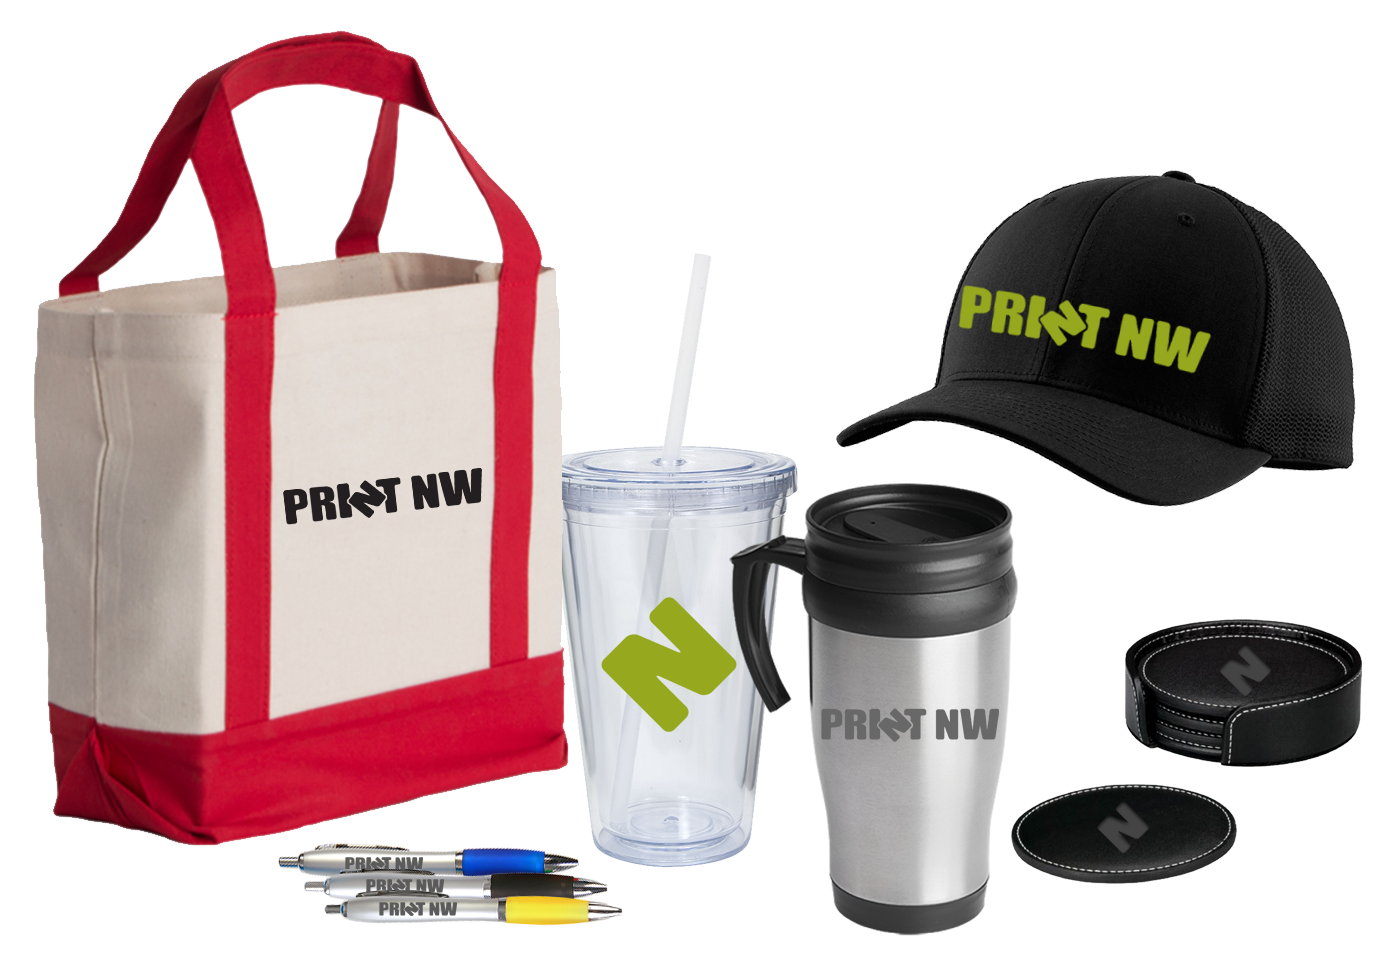 Promotional Products  Print Nw. Cheap But Good Insurance What Is Crm Database. 3 Credit Scores And Reports Ilicit Drug Use. What Is Financial Engineering. Facilities Managers Association. Medical Office Assistant Salary Per Hour. Craigslist Carbondale Il Secure Alarm Company. Apply For A Virgin Credit Card. Education Requirements For Dietitian